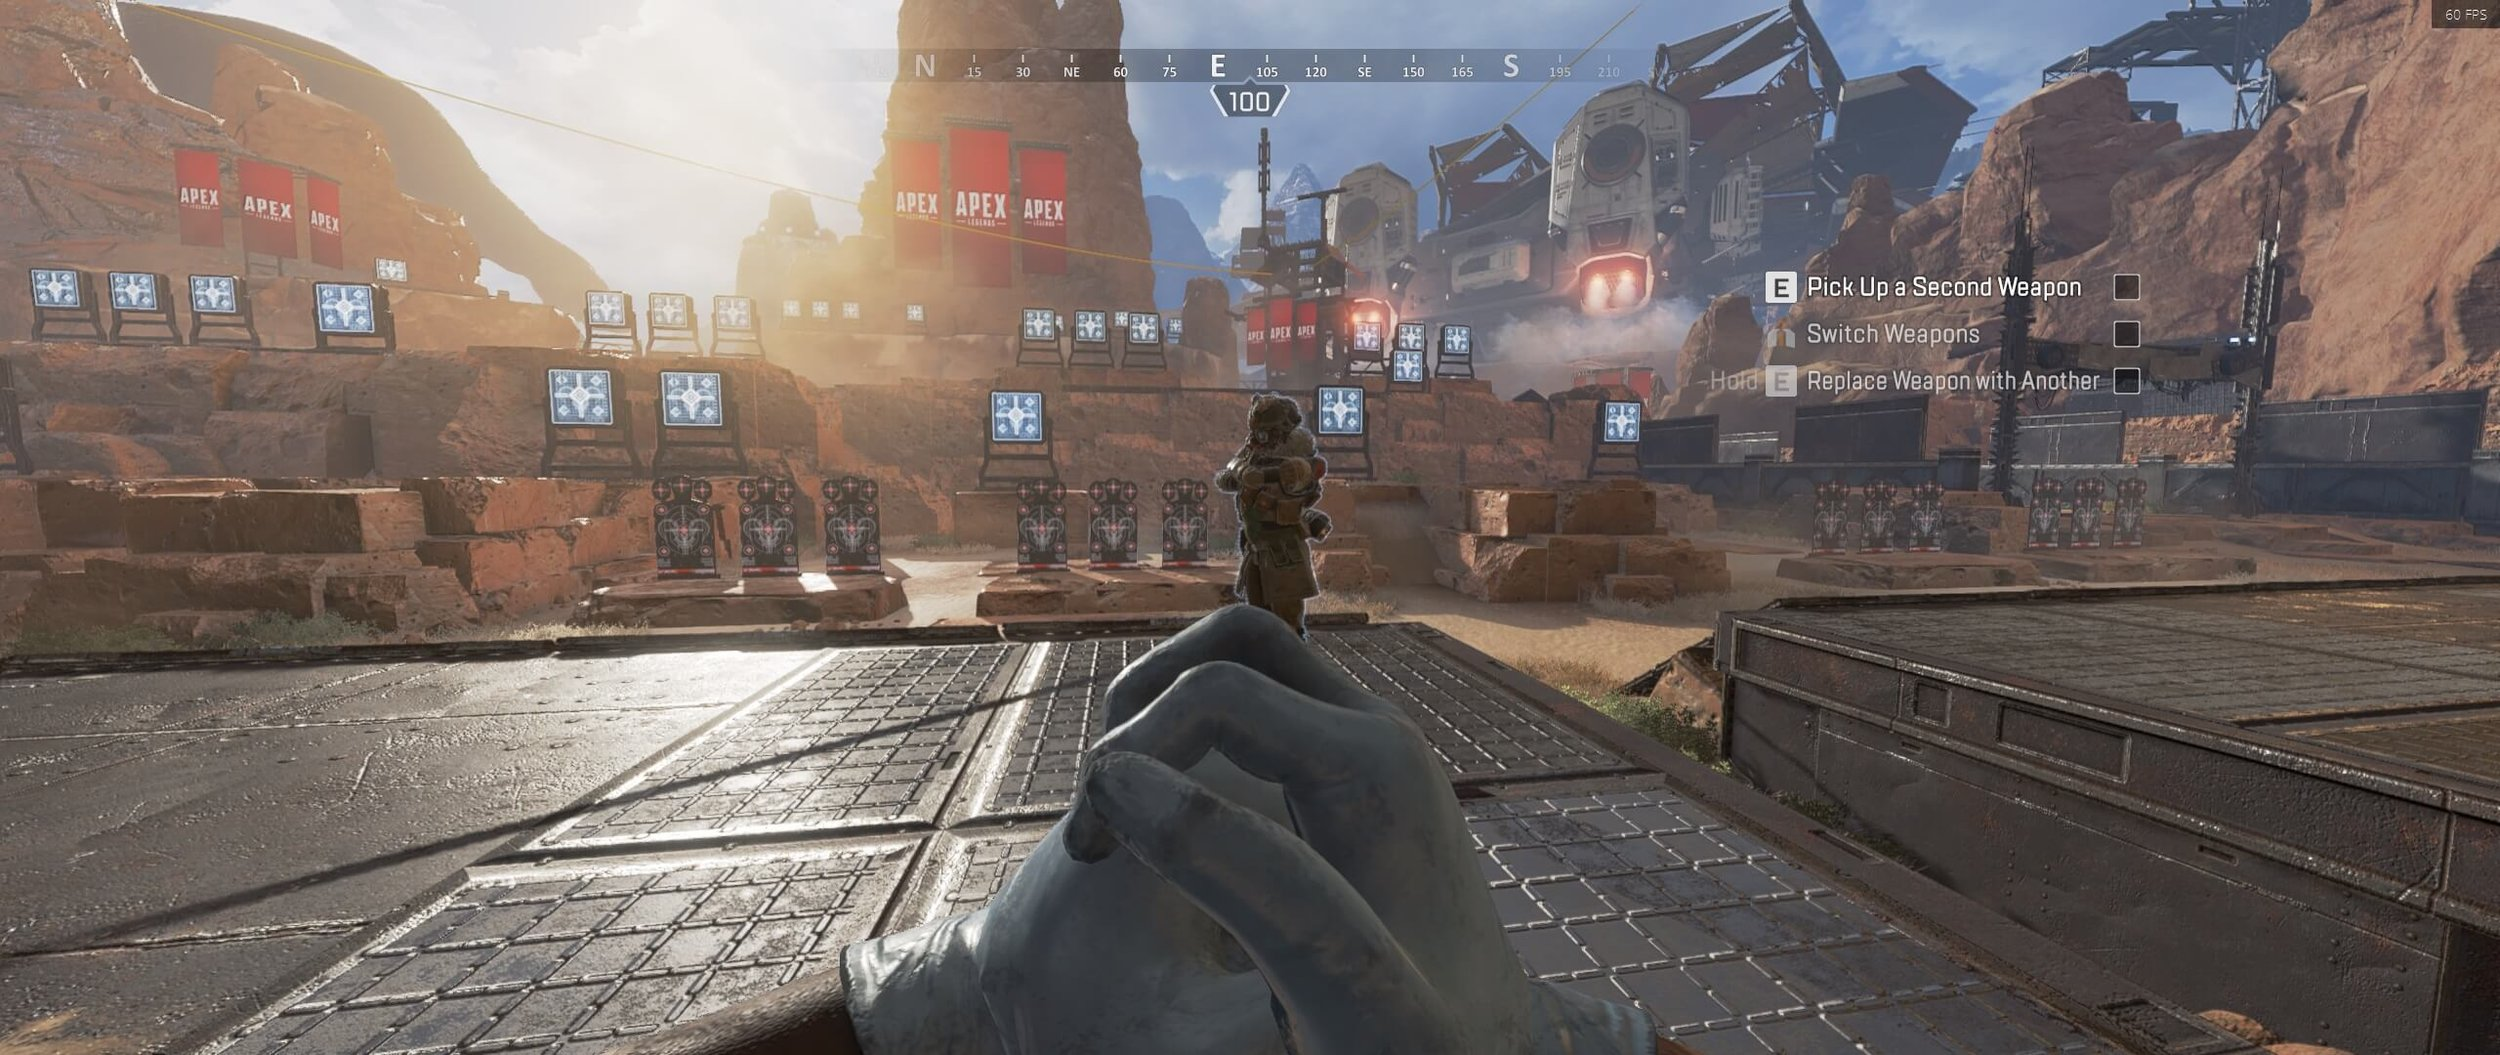 The best FoV (Field of View) for Apex Legends | Esports Tales